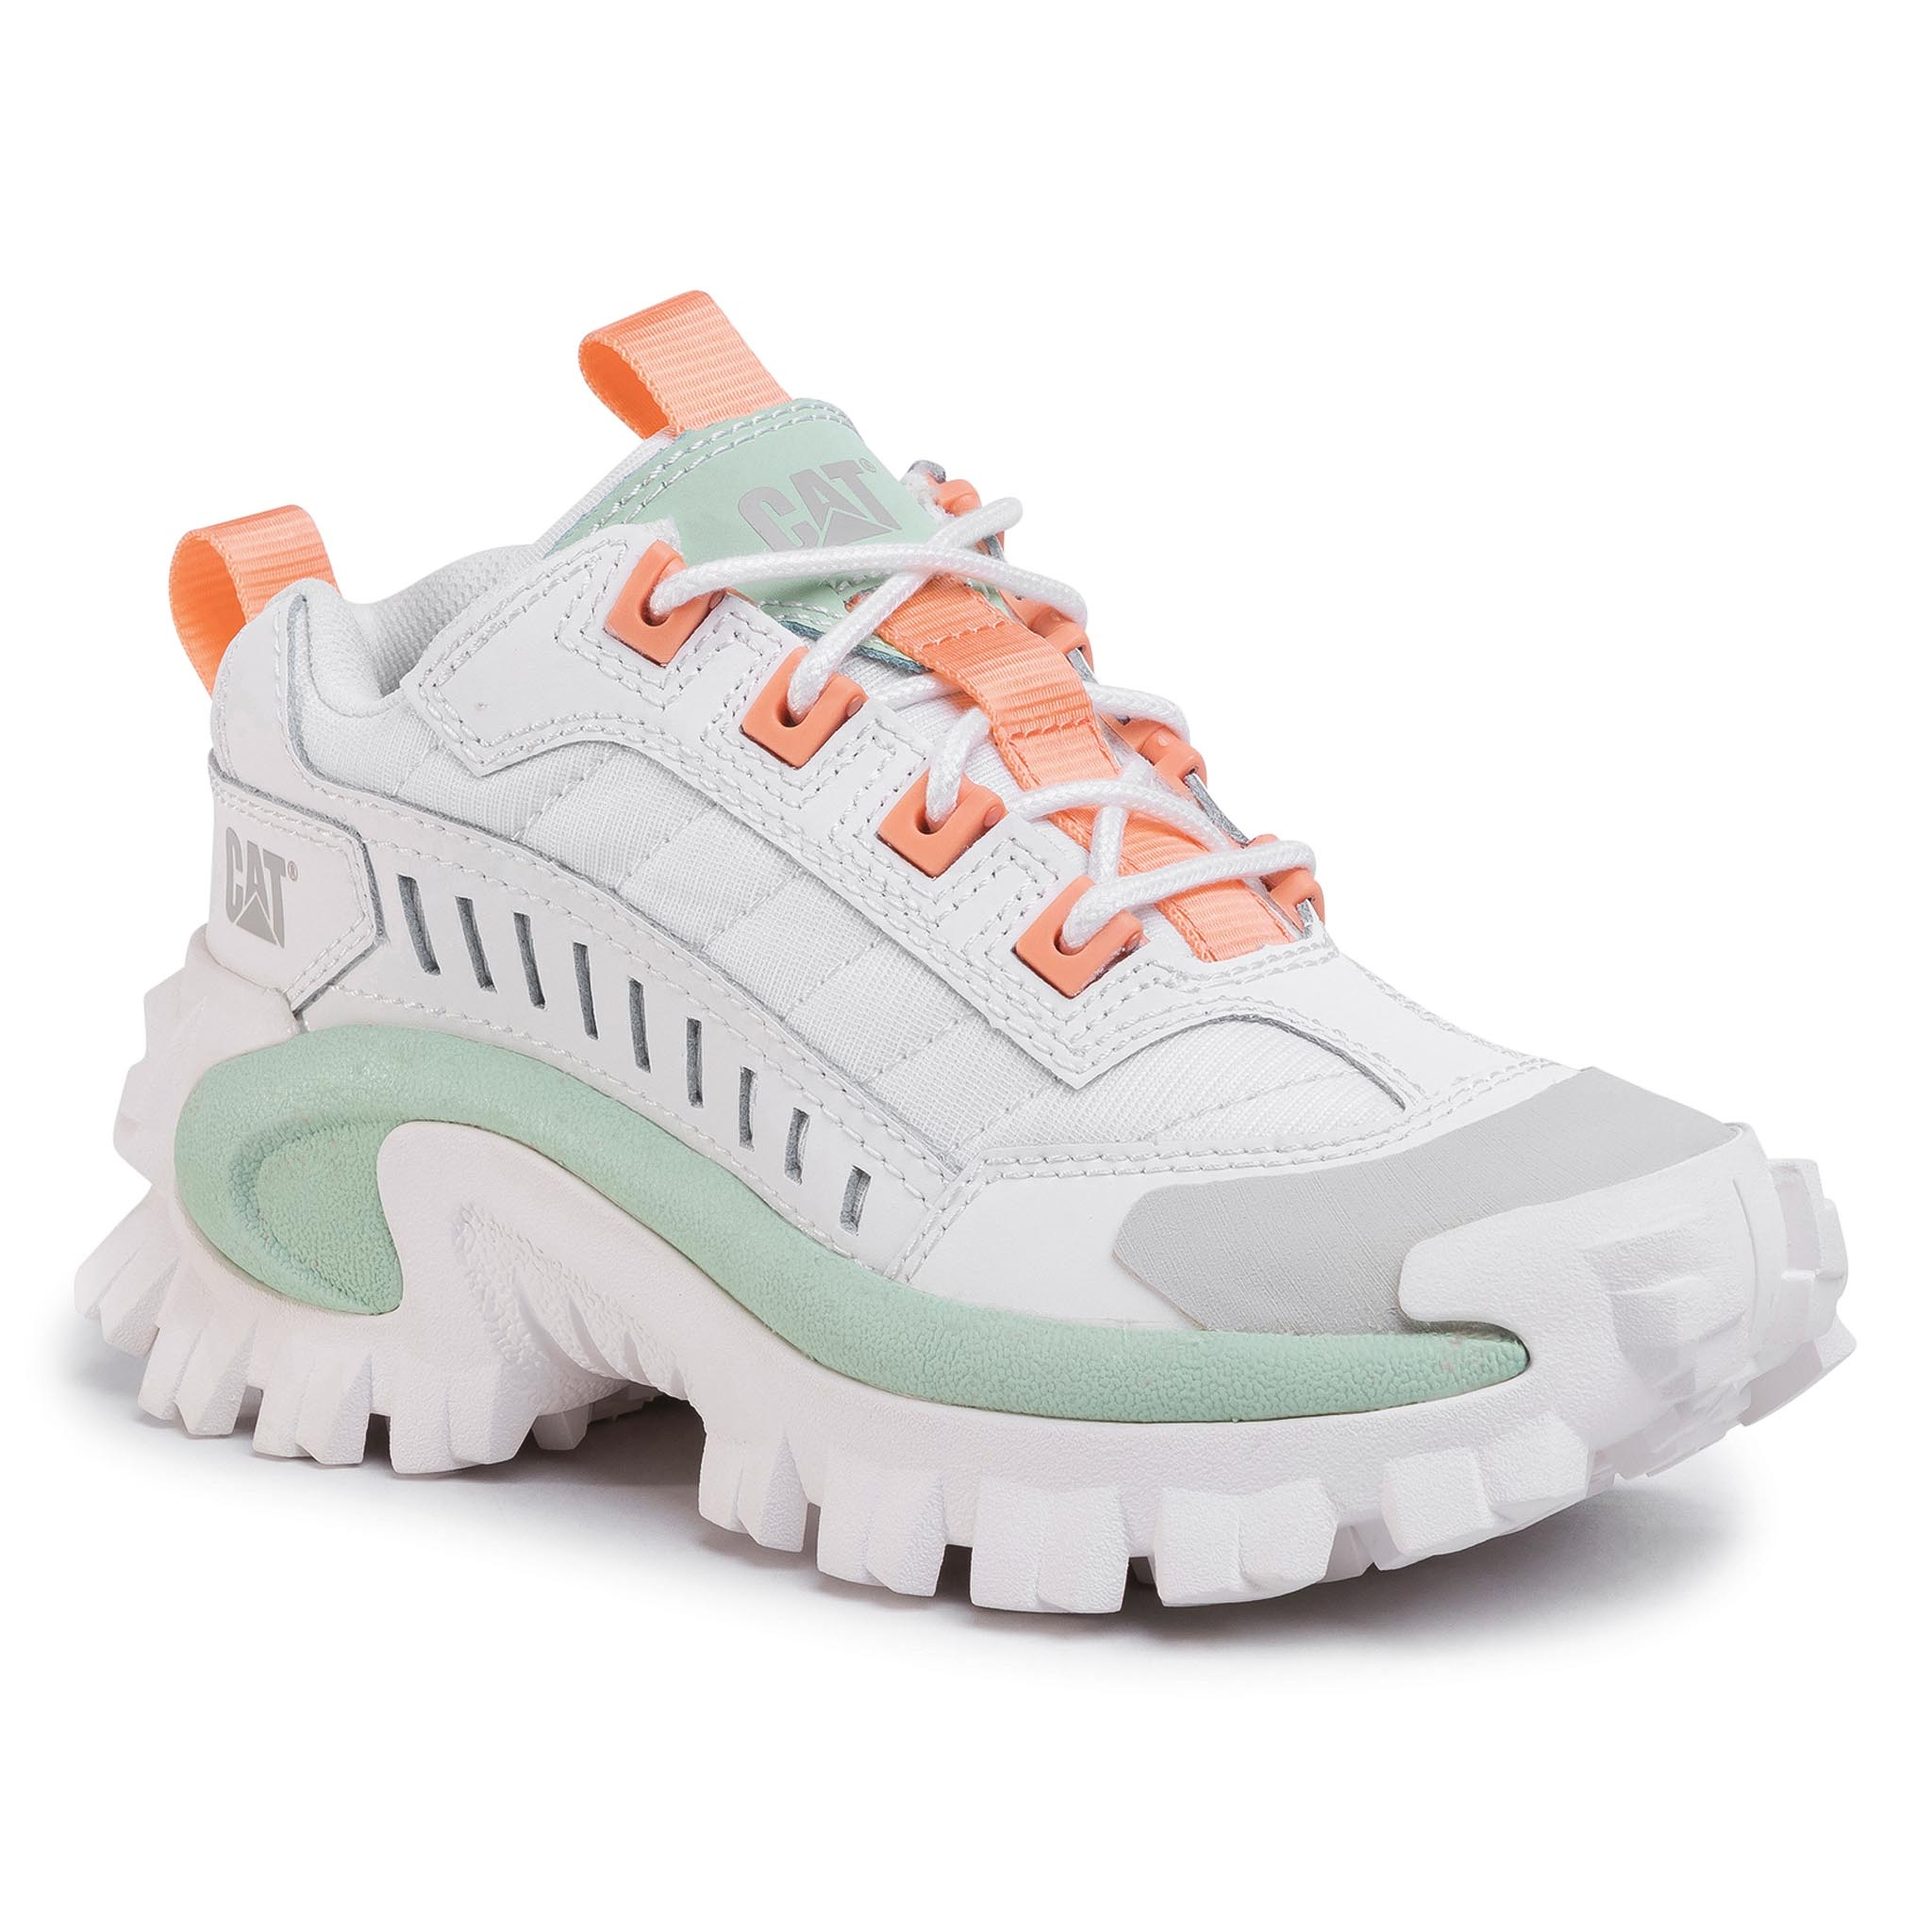 Sneakers CATERPILLAR - Intruder P724500 Star White/Pastel Green